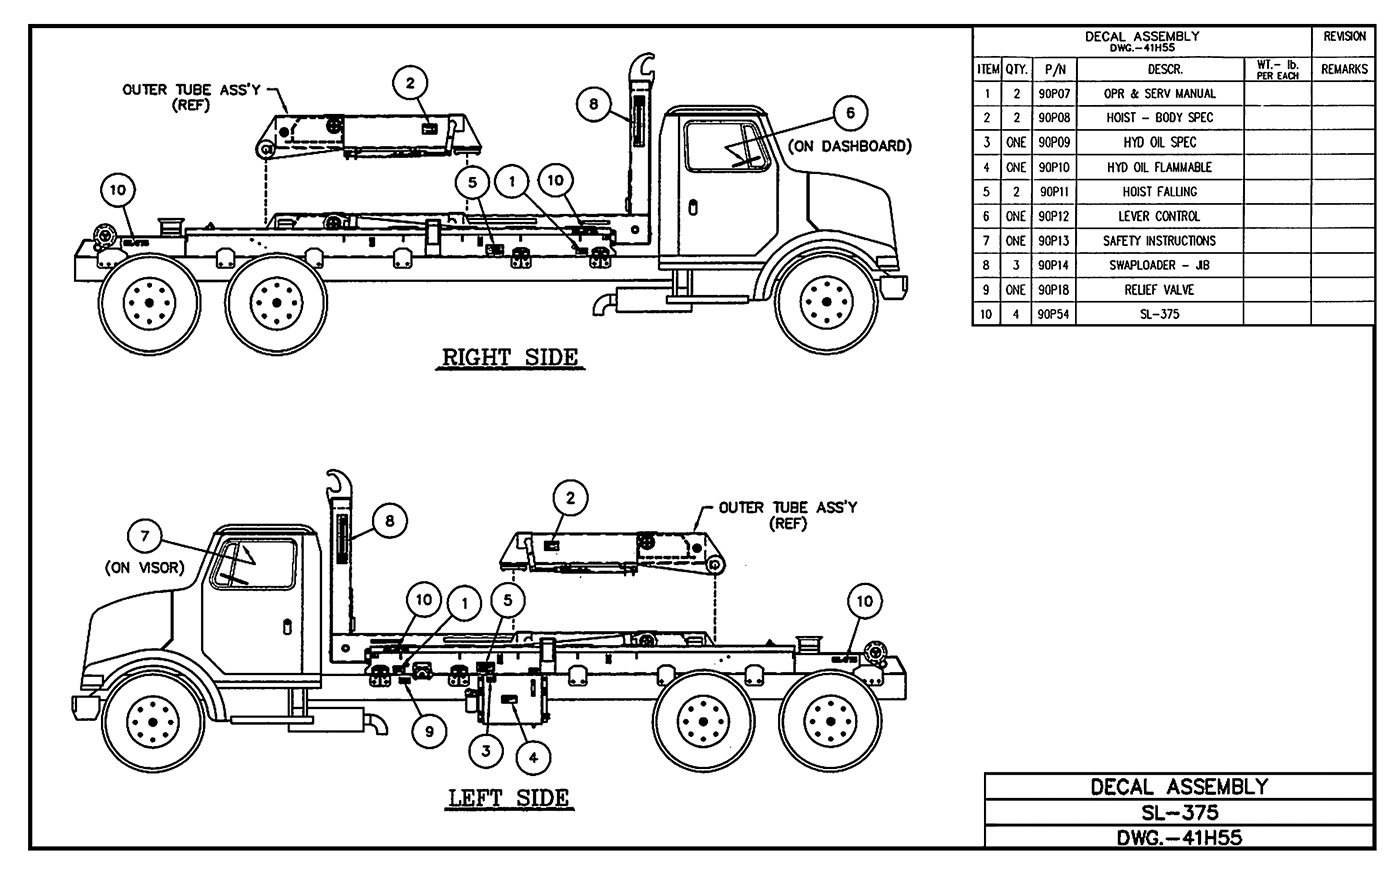 SL-375 Decal Assembly Diagram